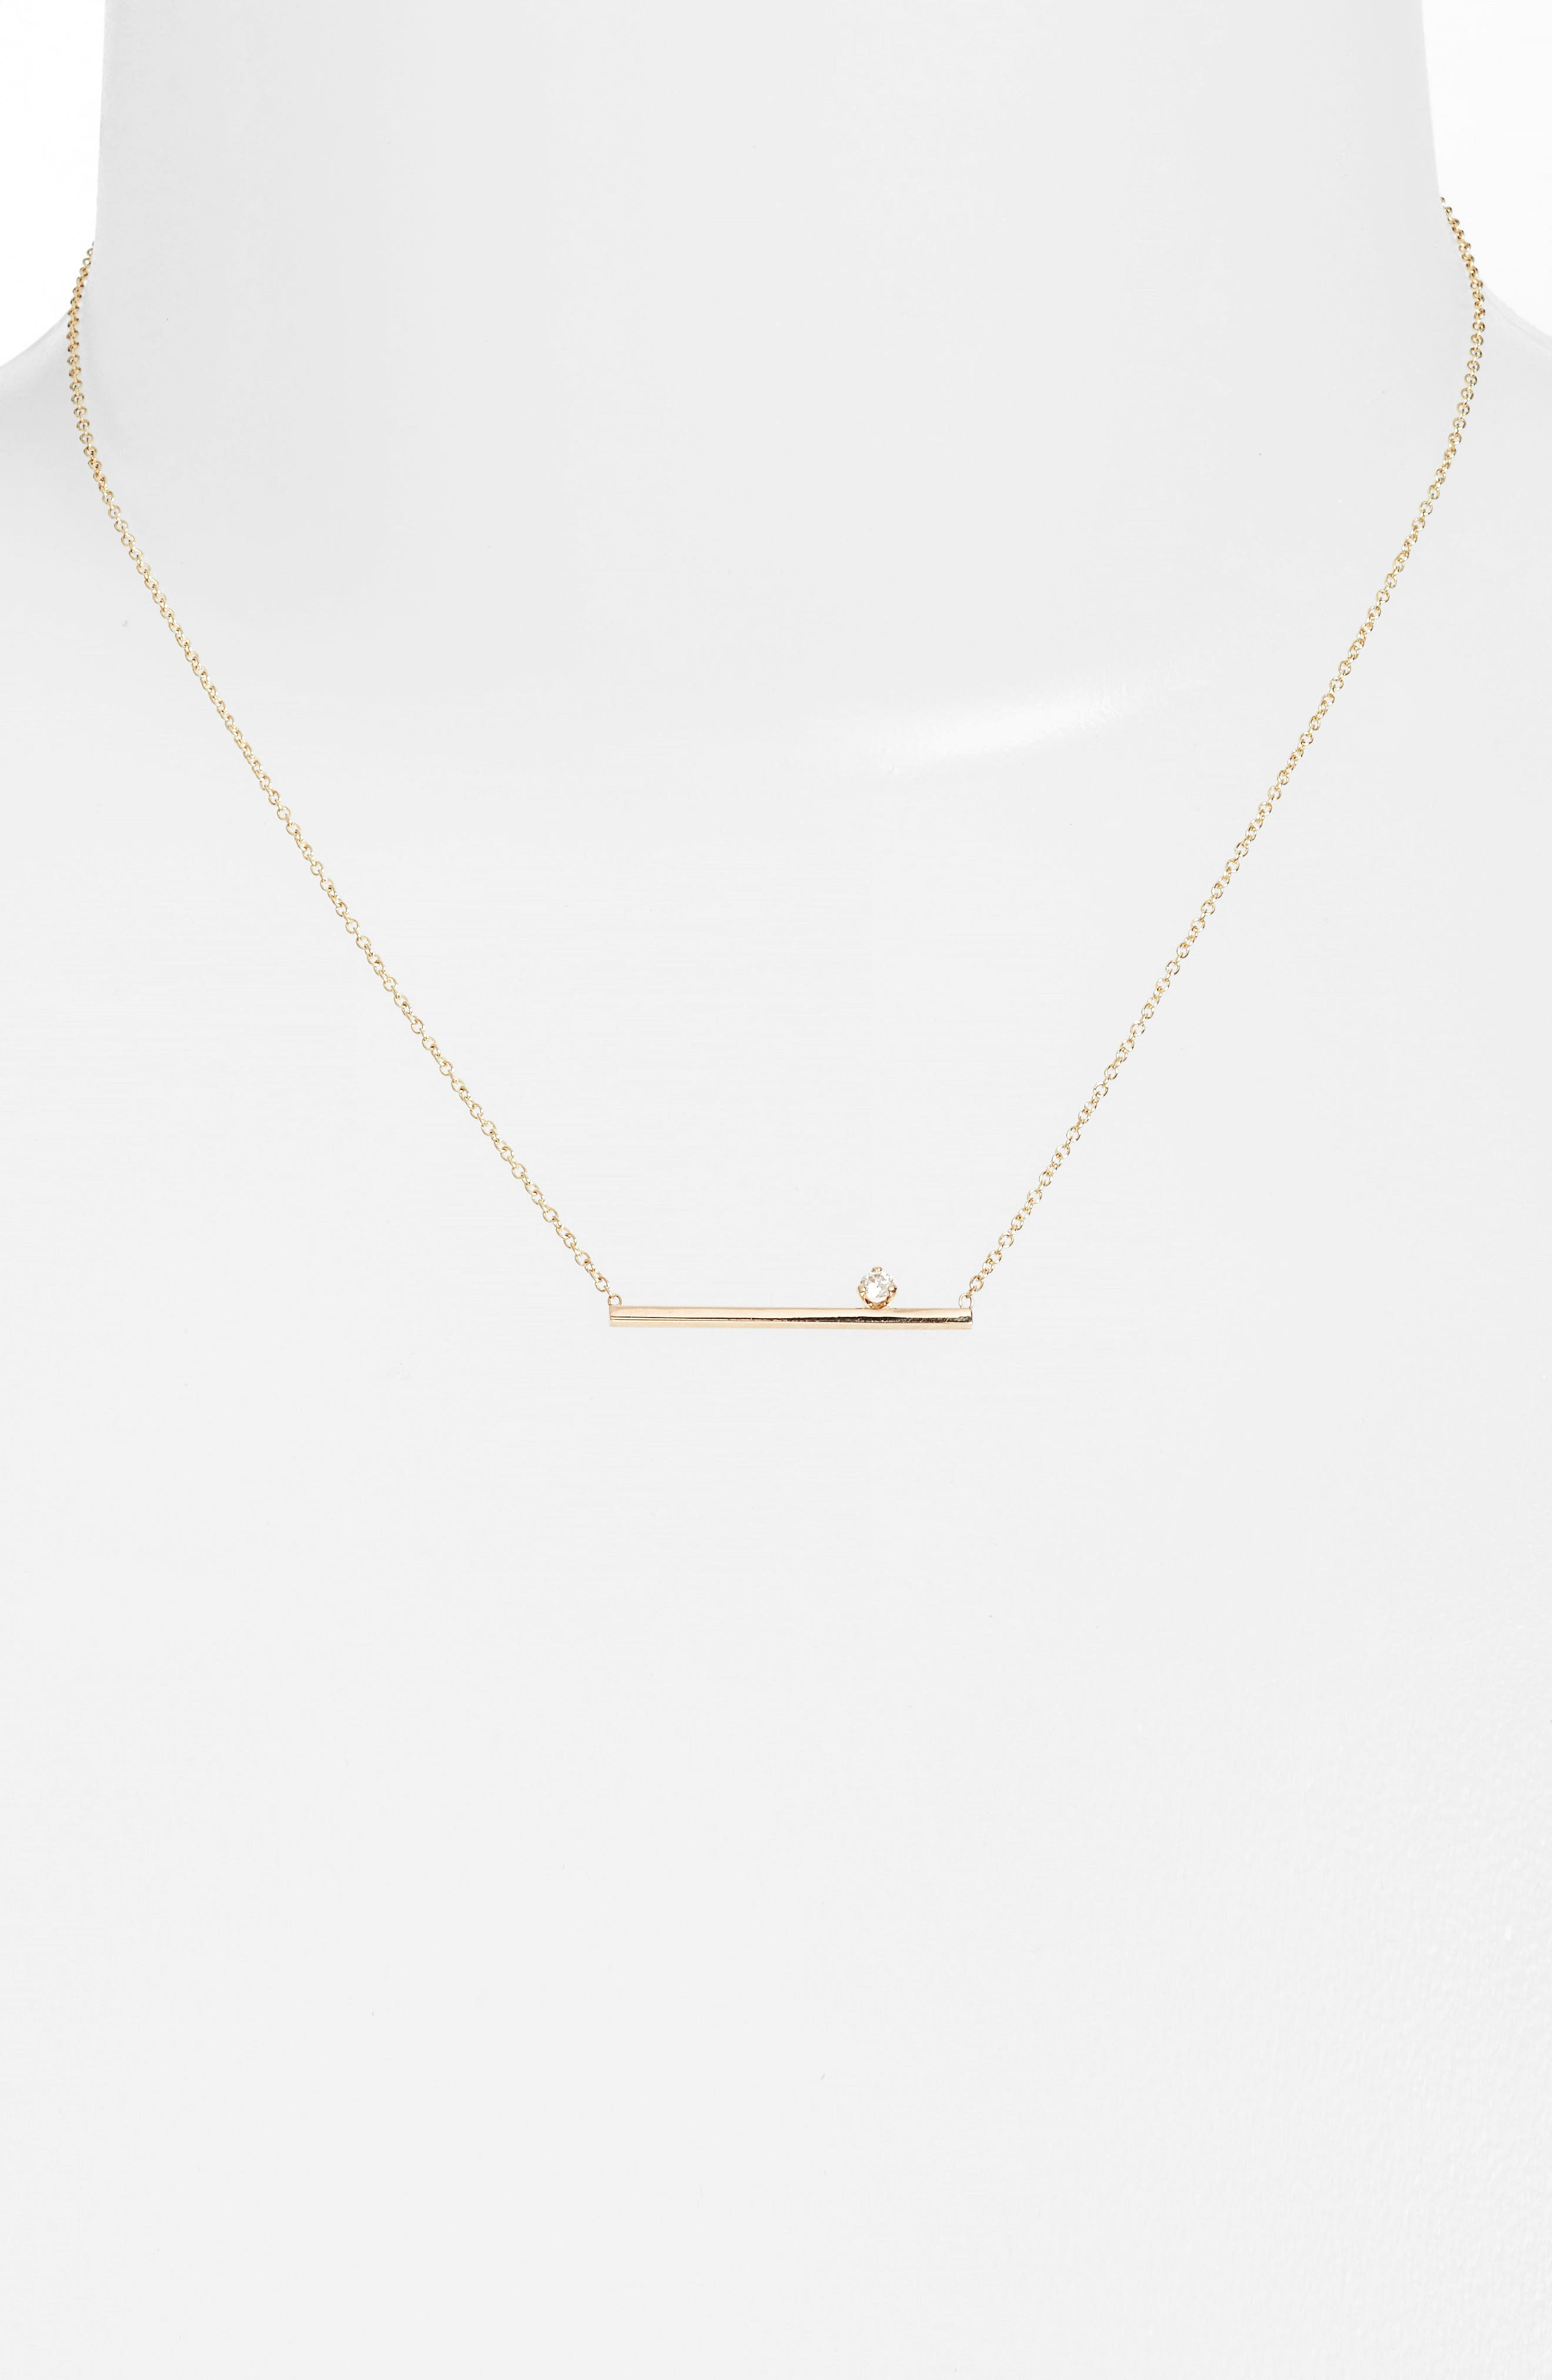 ZOË CHICCO Floating Diamond Pendant Necklace